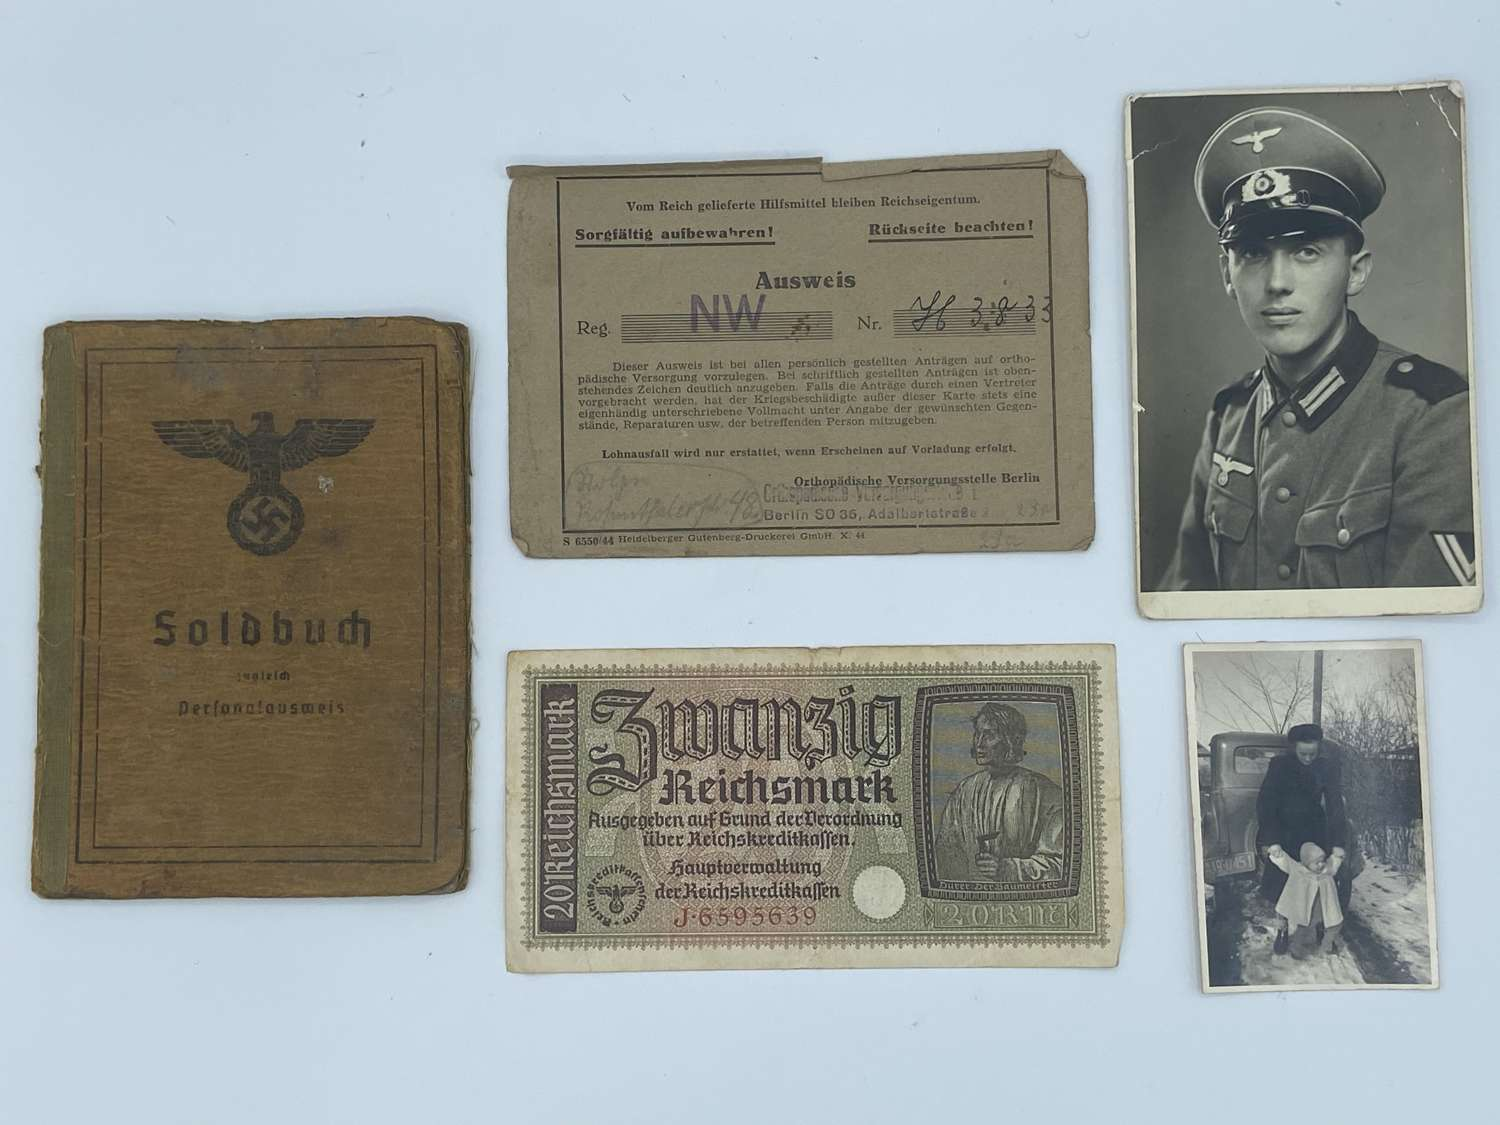 WW2 Operation Vienna casualty  Soldbuch Ogfr Franz Gren Ers Btl I/462